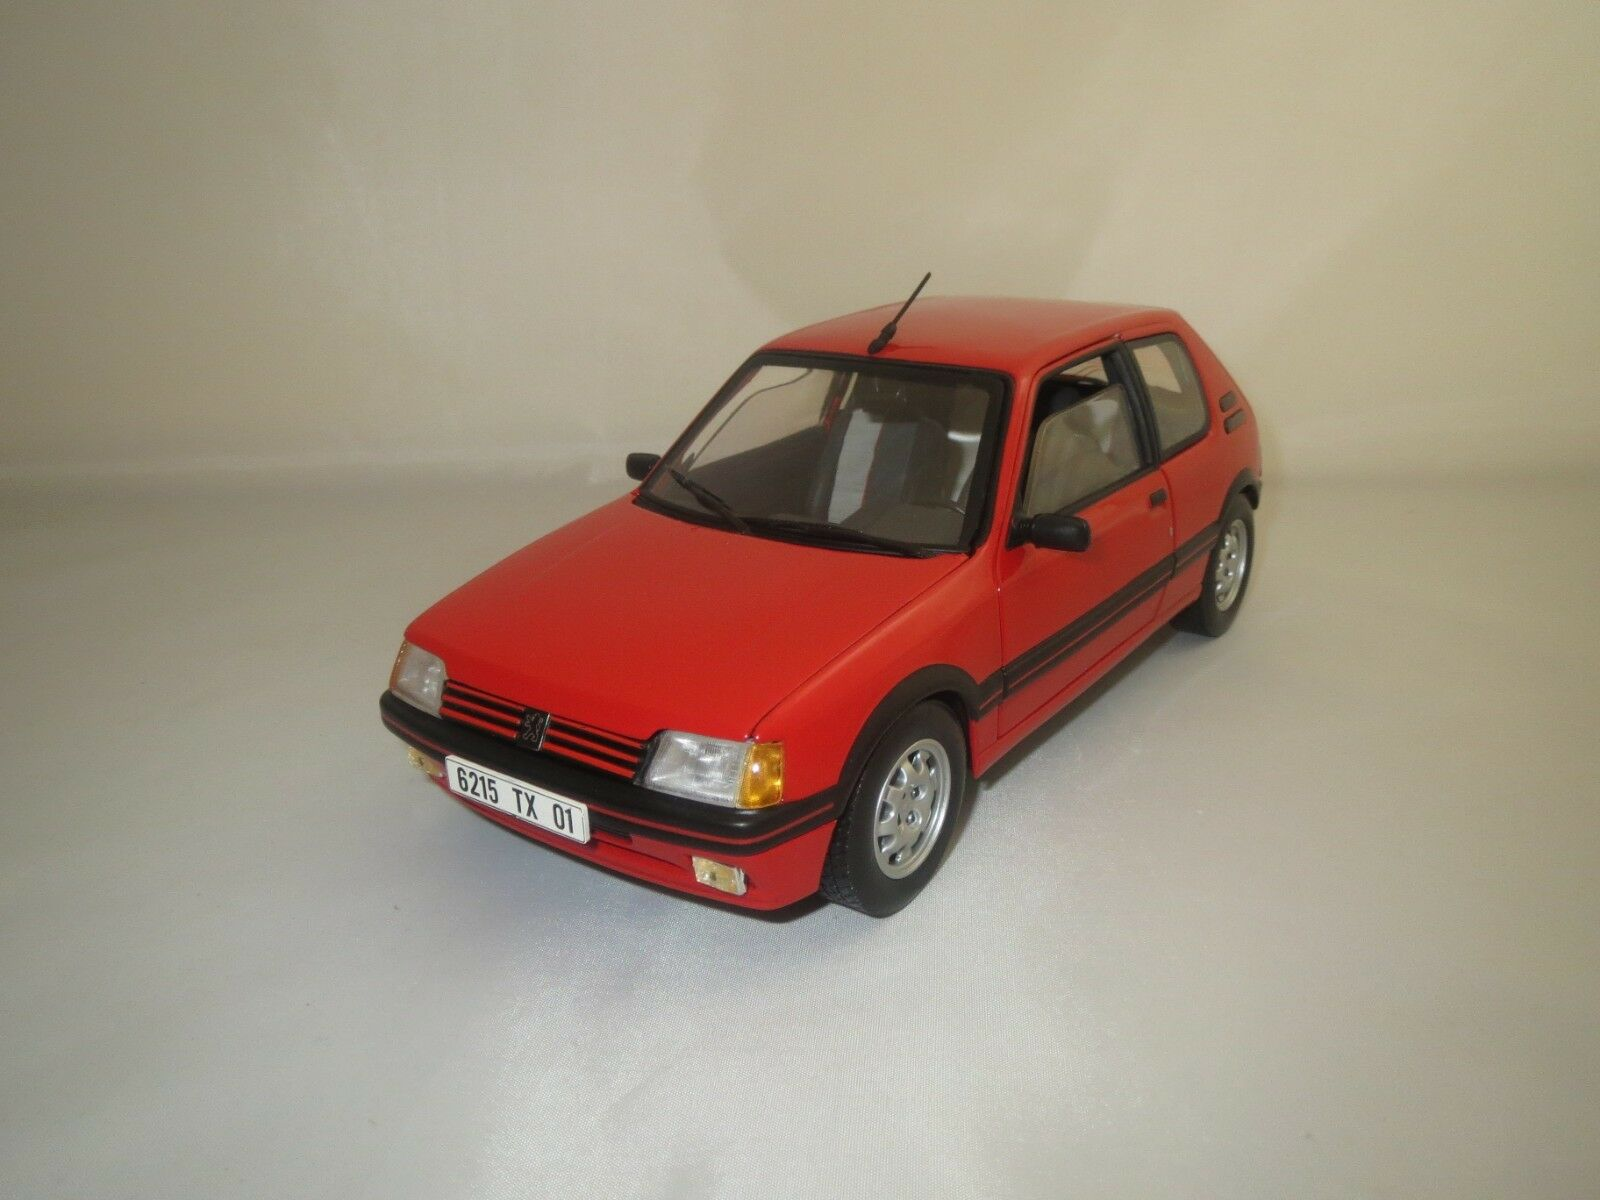 Solido peugeot 205 GTI (rosso) 1 18 sin embalaje